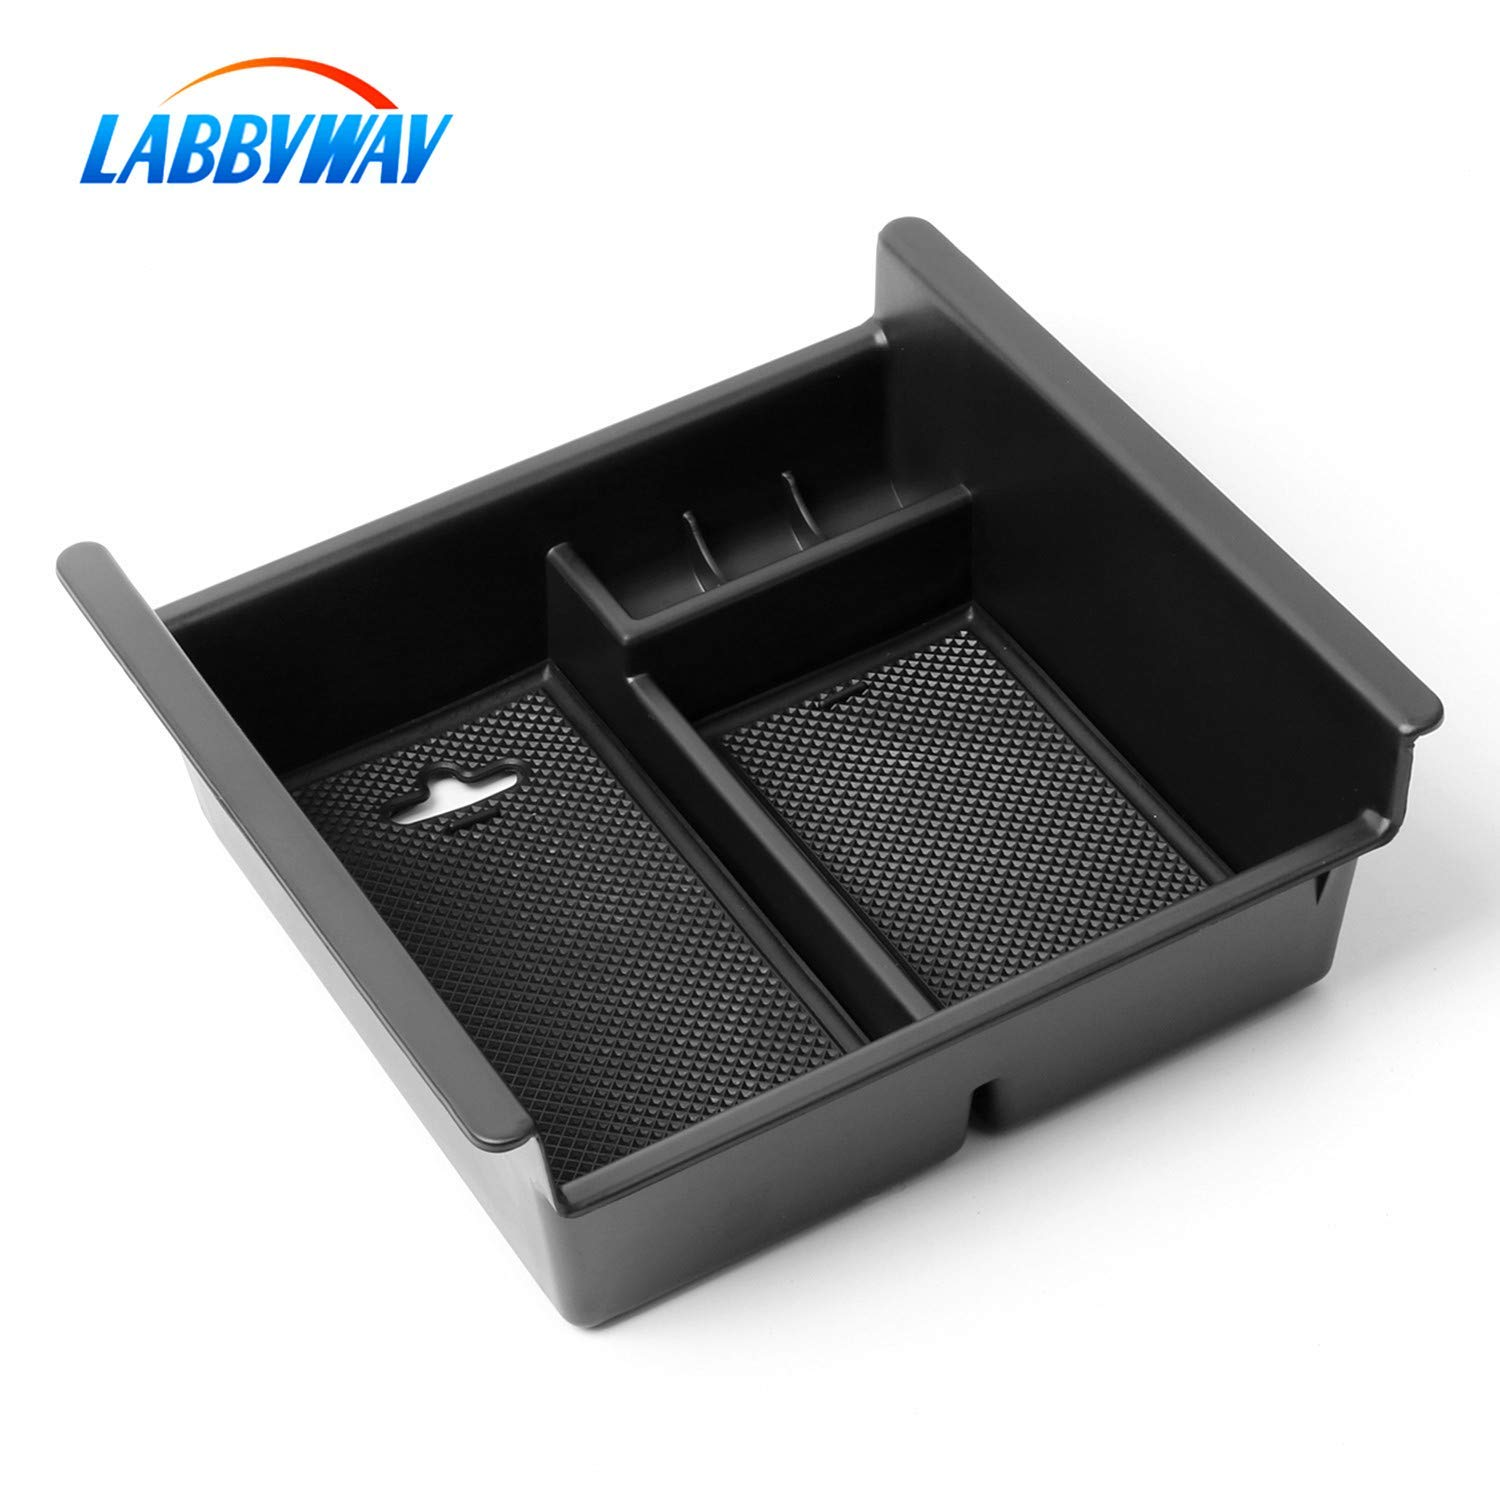 Armrest Box Secondary Storage Fits Toyota 4Runner 2010-2019 Labbyway Center Console Organizer Insert ABS Black Materials Tray